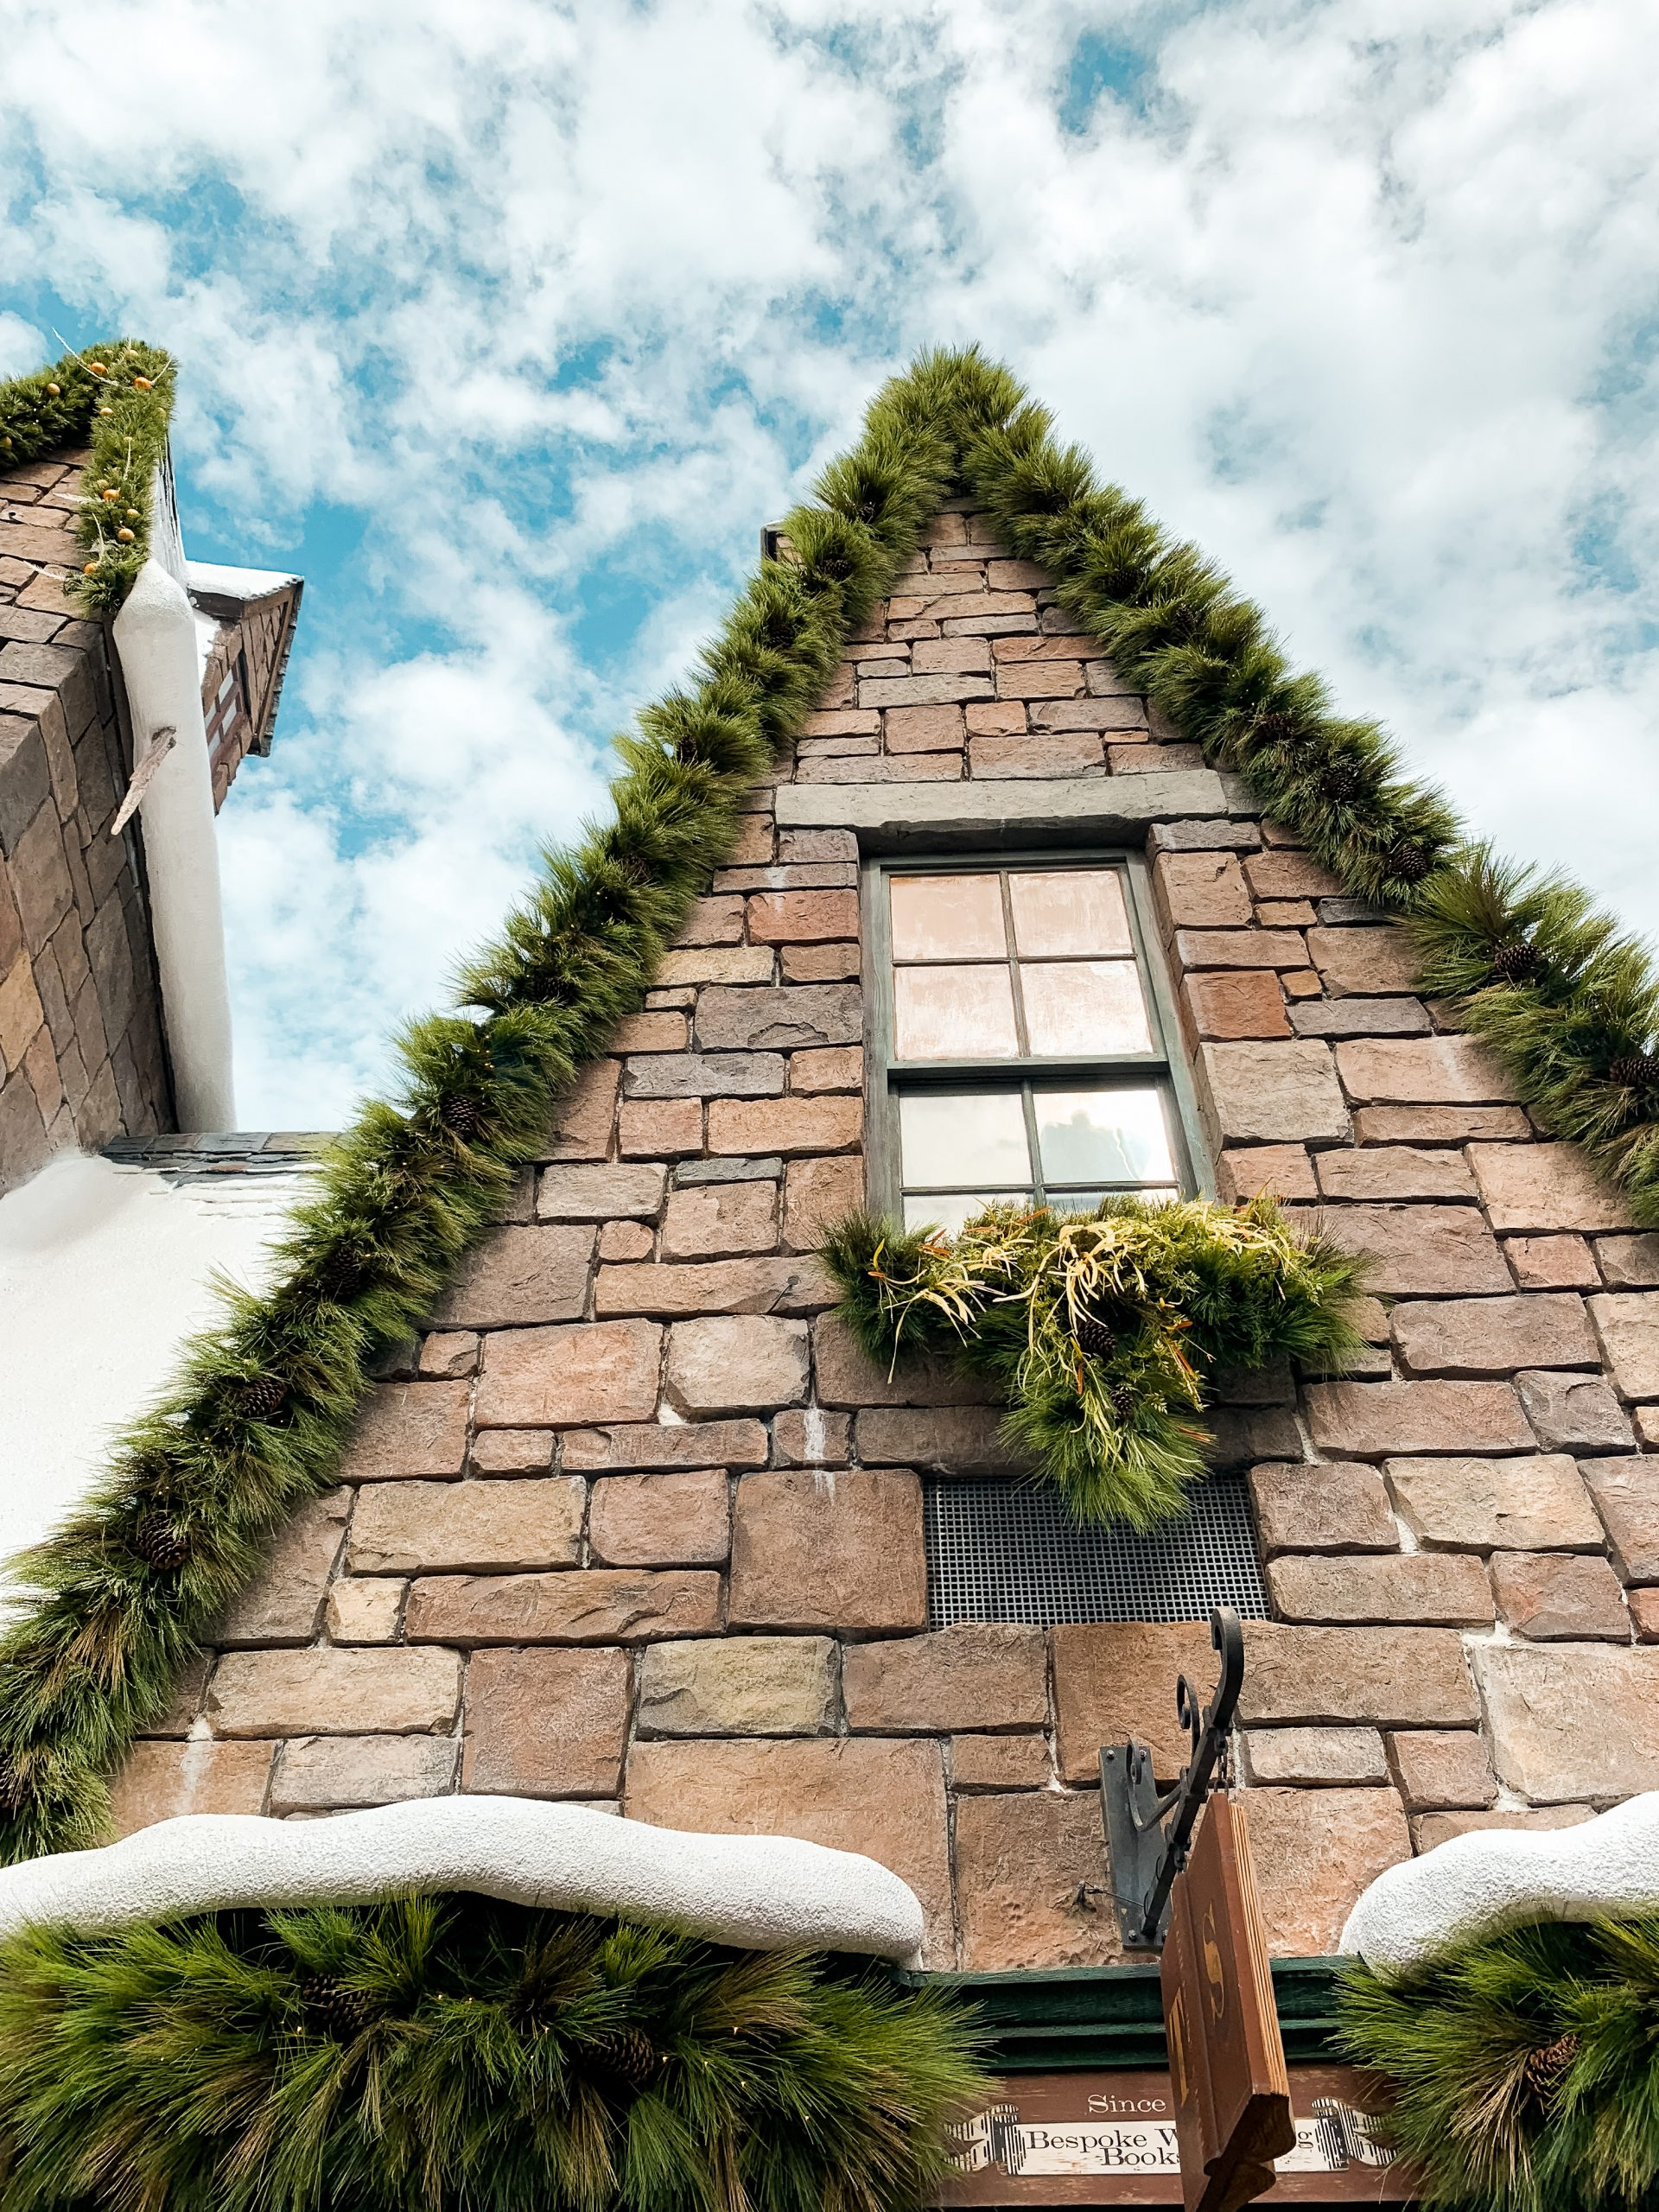 snowy store fronts In Hogmeade Wizarding World of Harry Potter